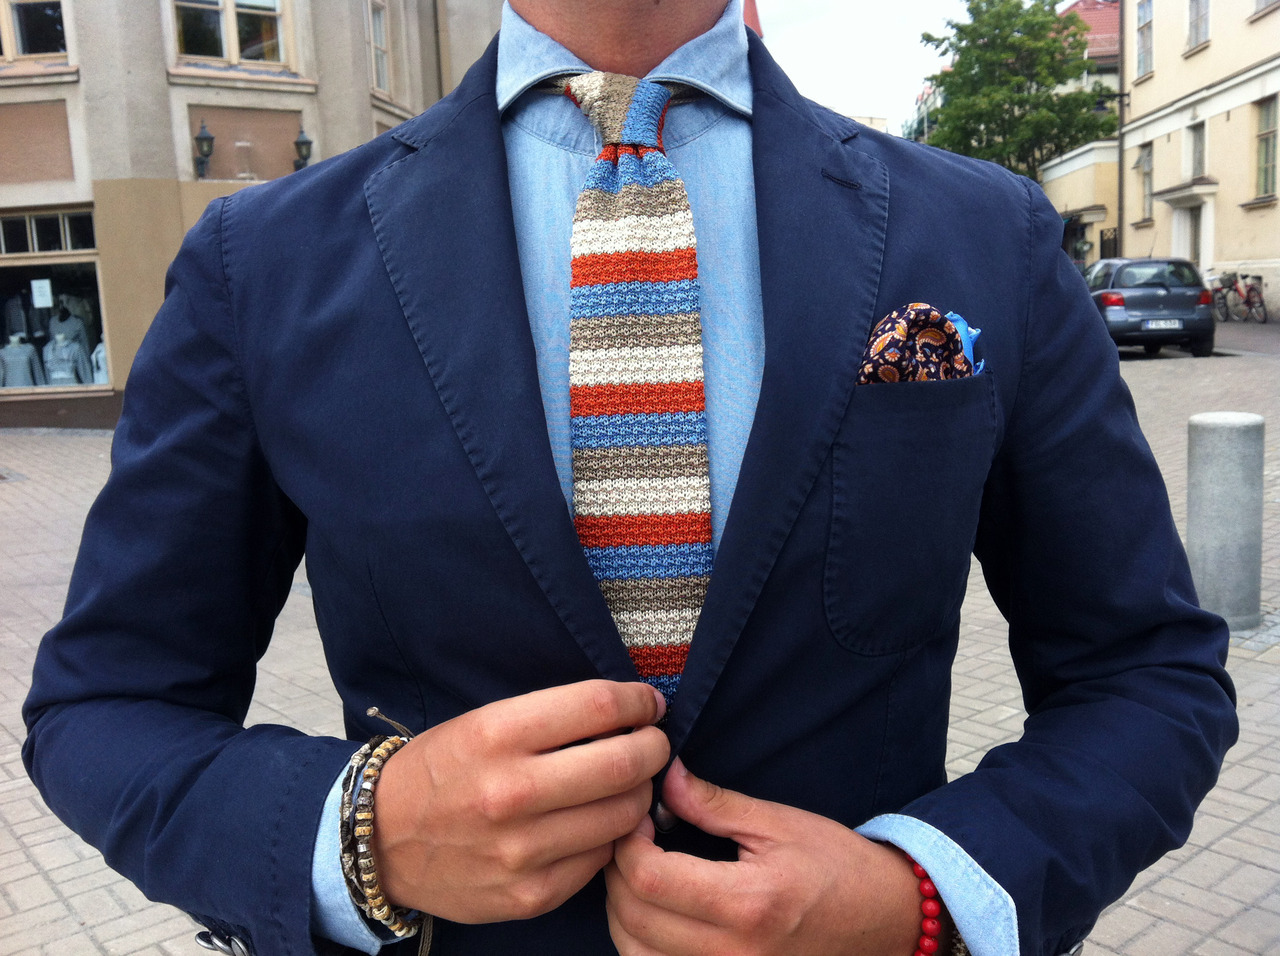 #DressWell all about the details